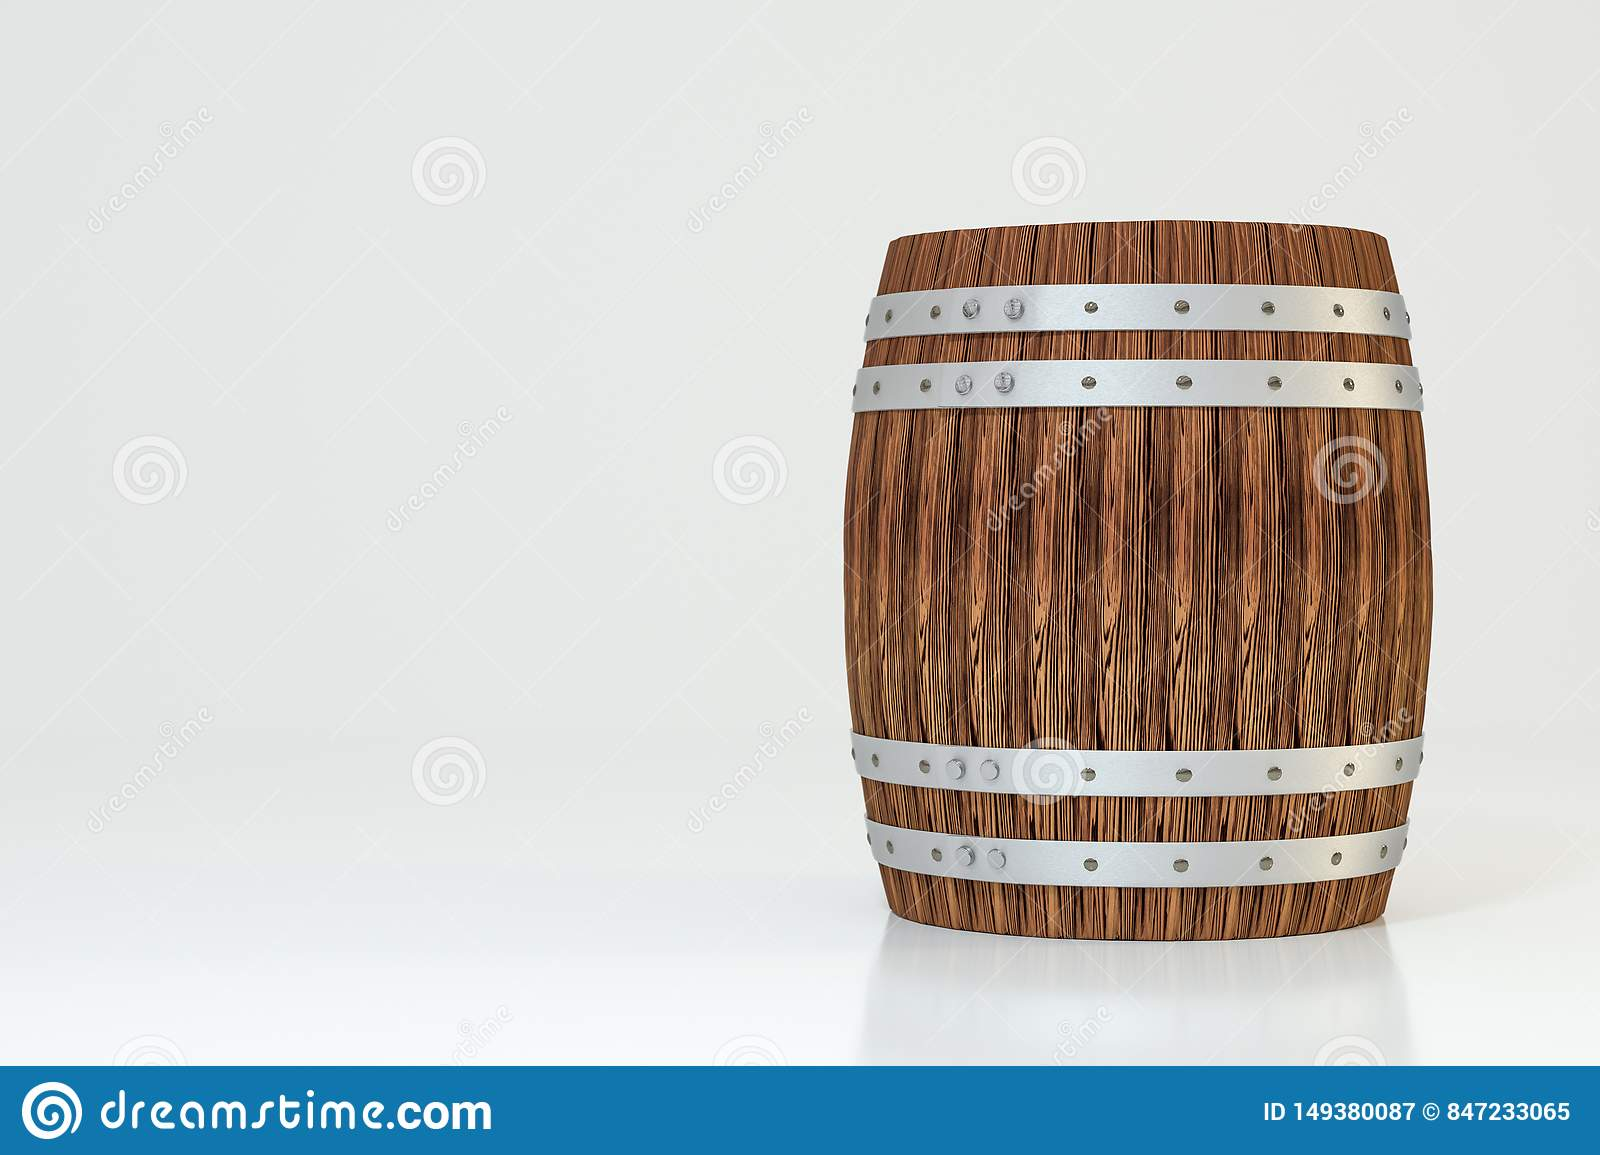 Wooden winery barrel with white background, 3d rendering